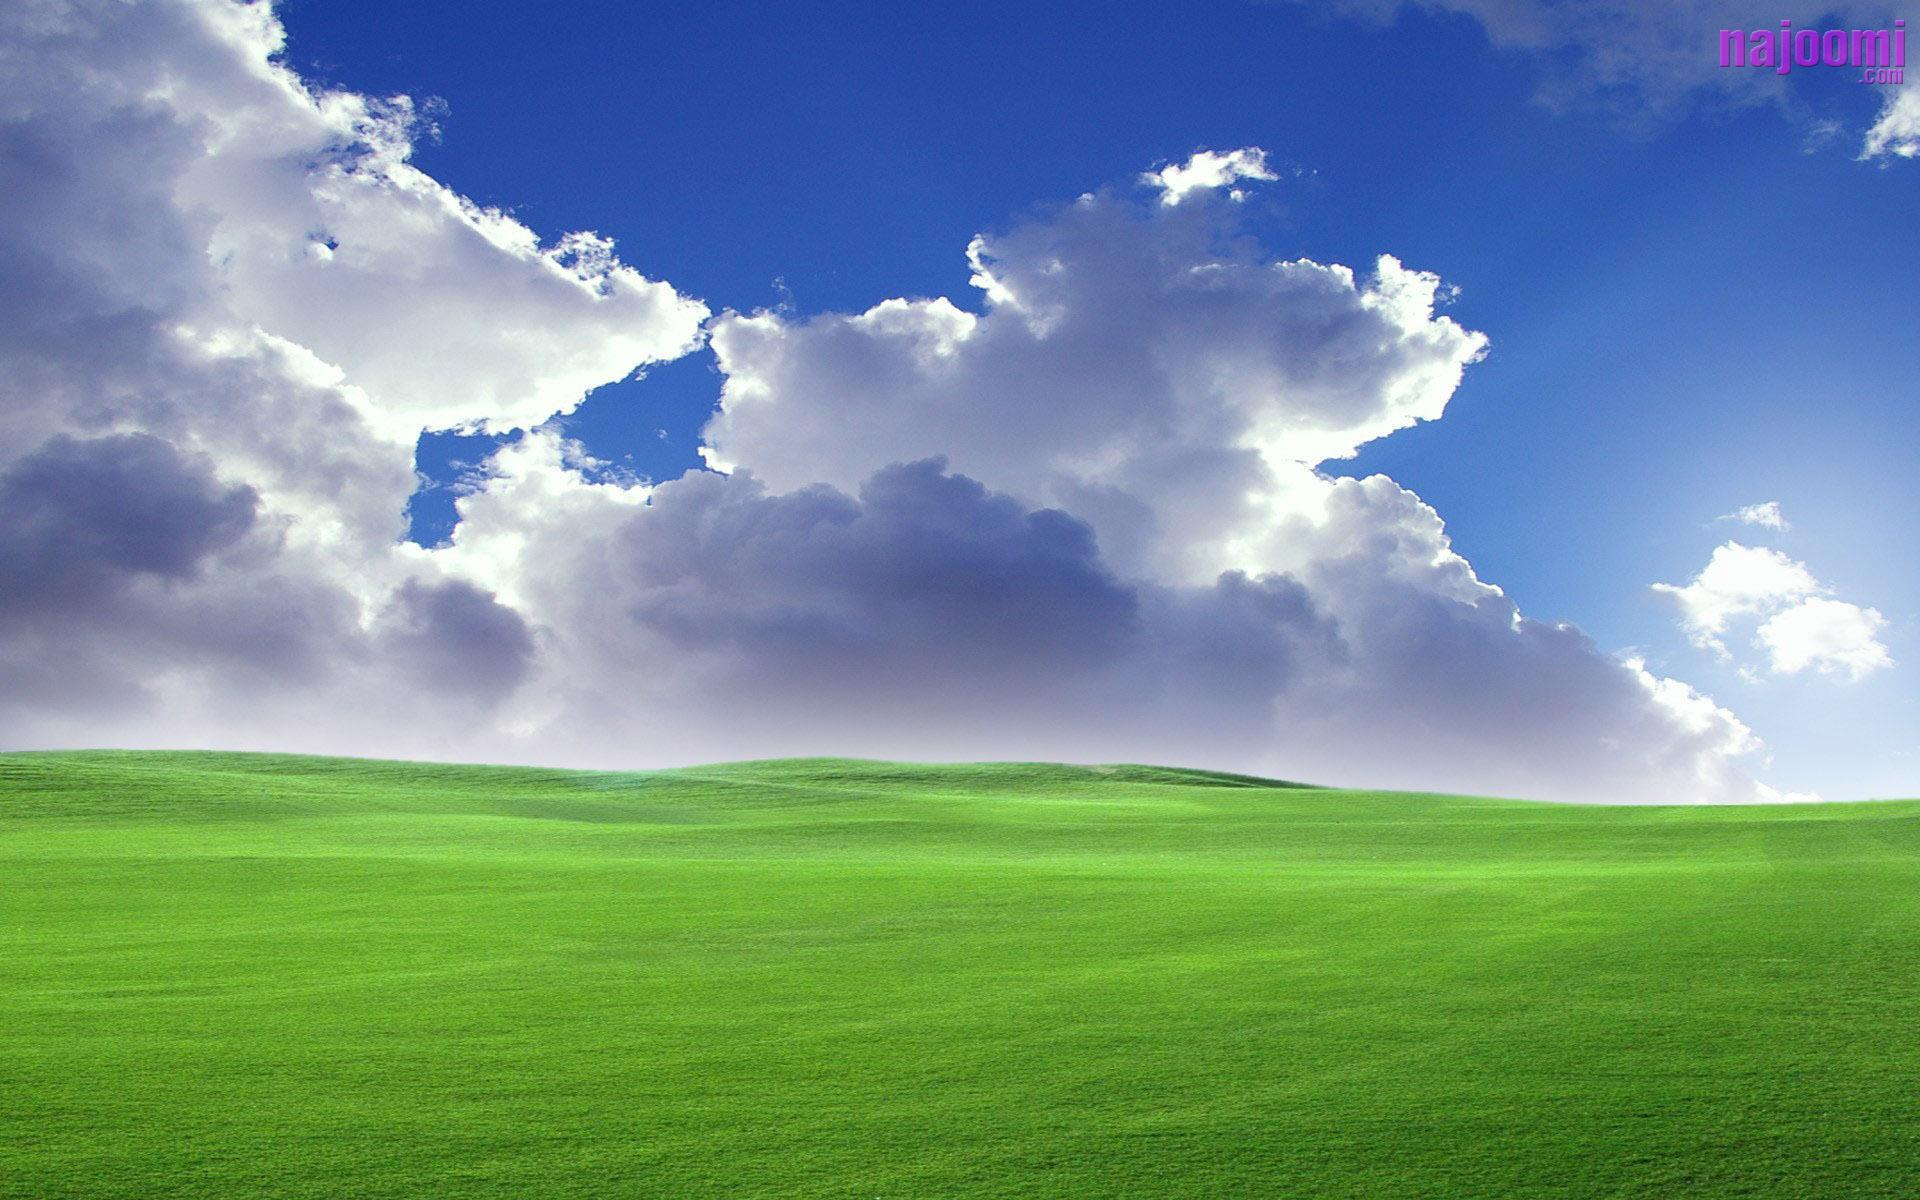 Windows xp wallpapers hd wallpaper cave for Latest wallpaper your home